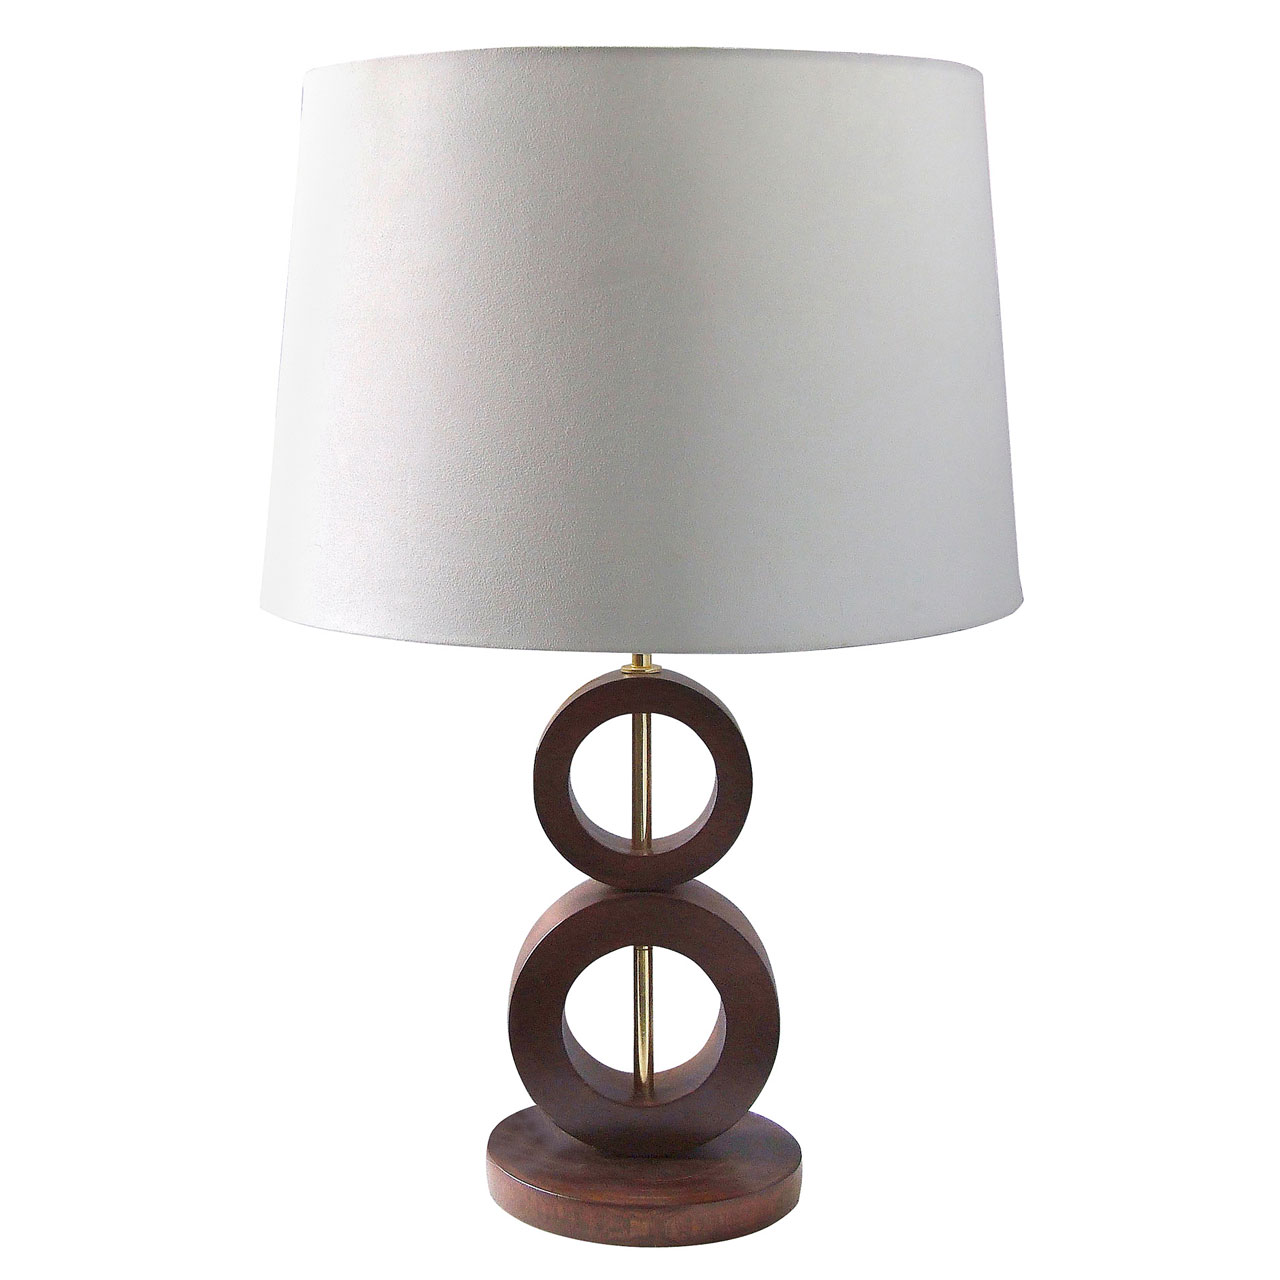 stylish wooden circles detail base table lamp light mango wood fabric shade ebay. Black Bedroom Furniture Sets. Home Design Ideas